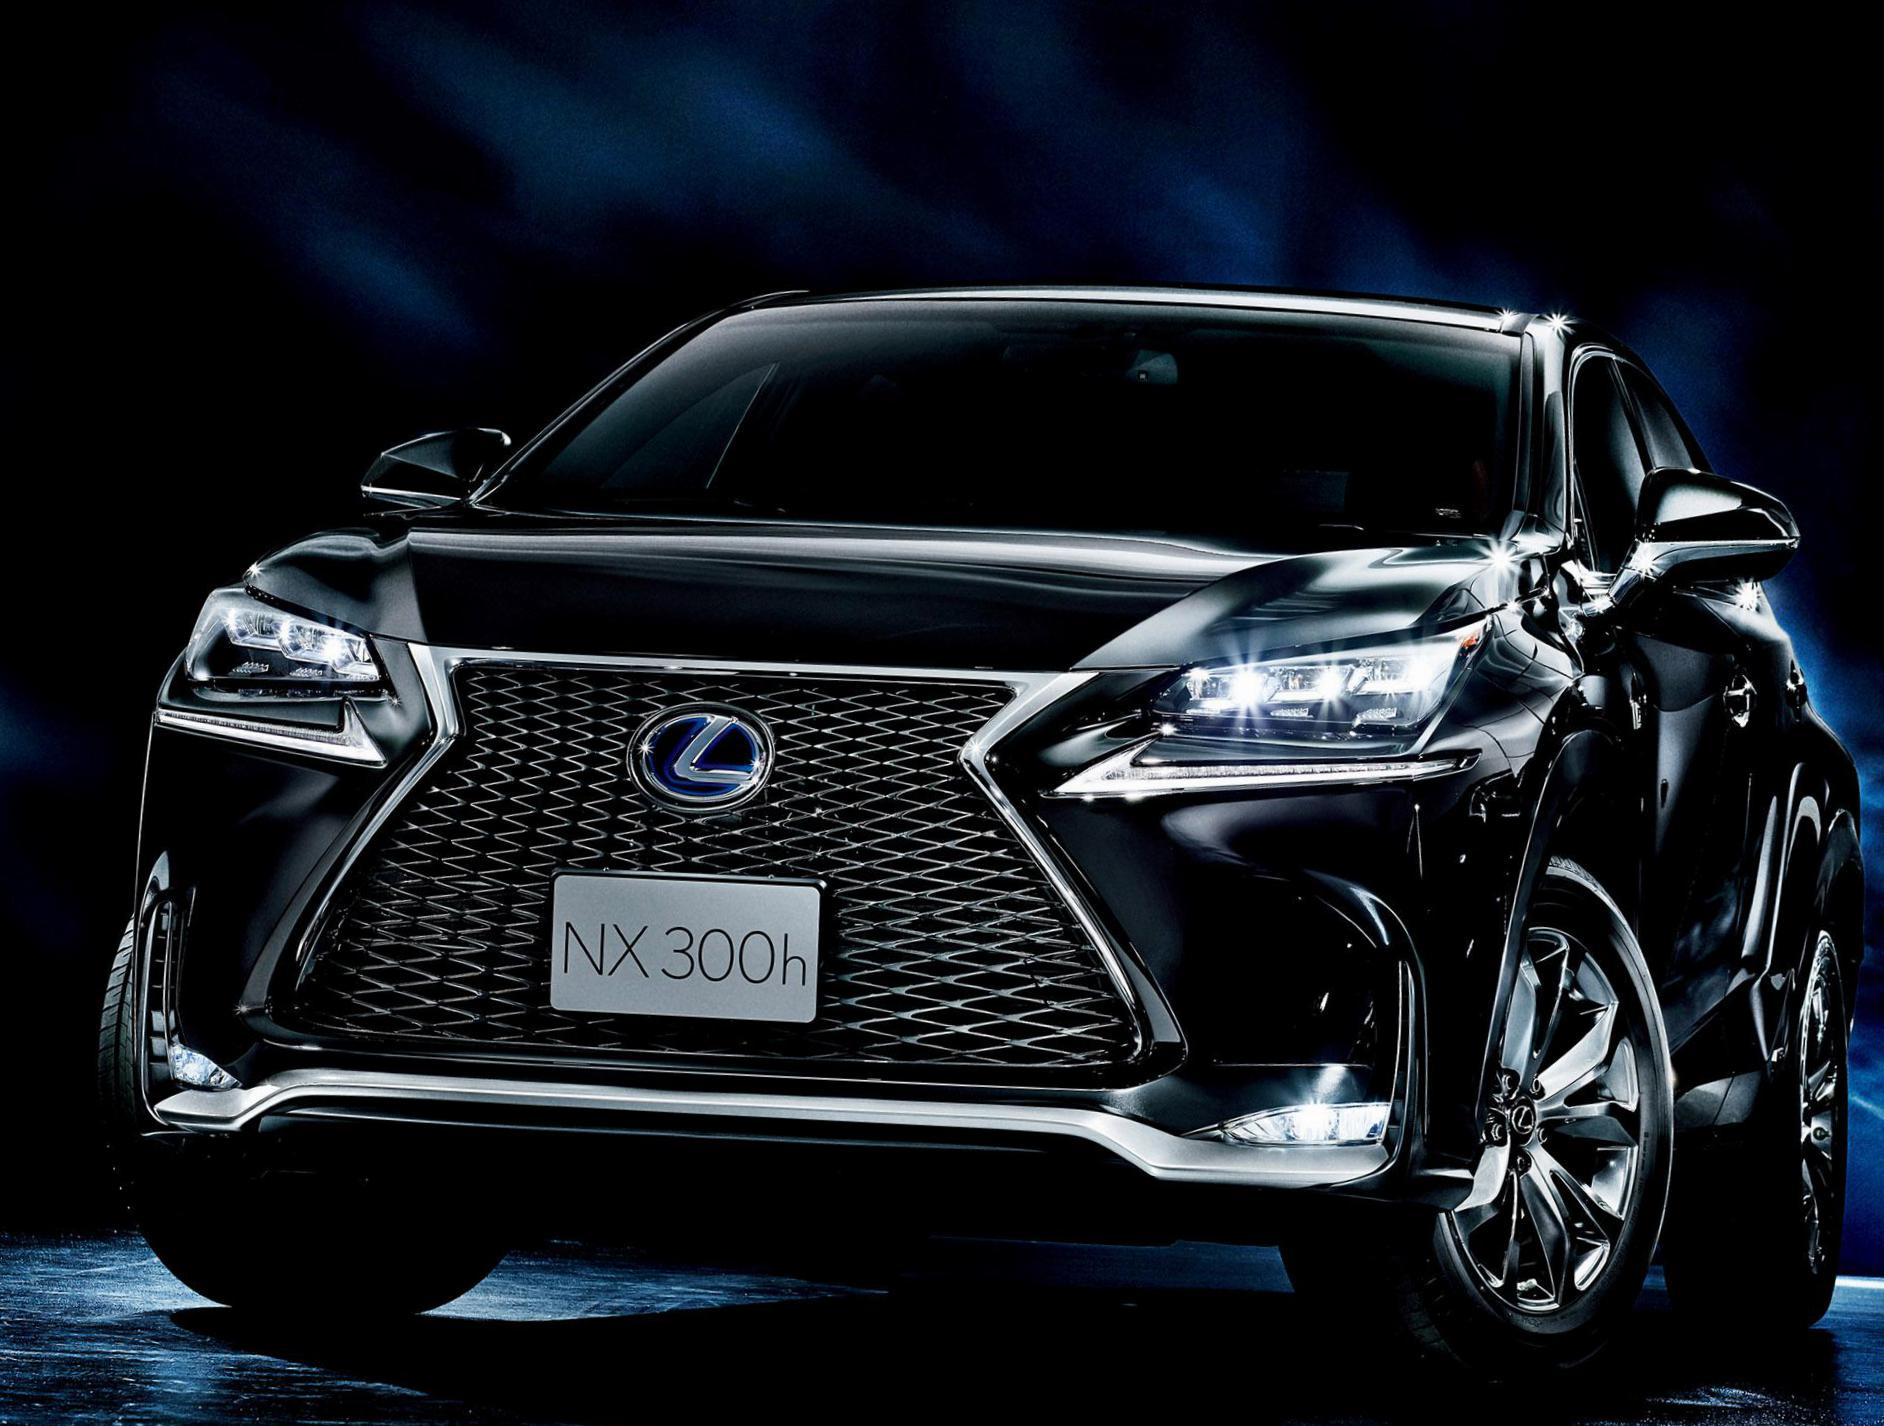 NX 300h Lexus tuning sedan